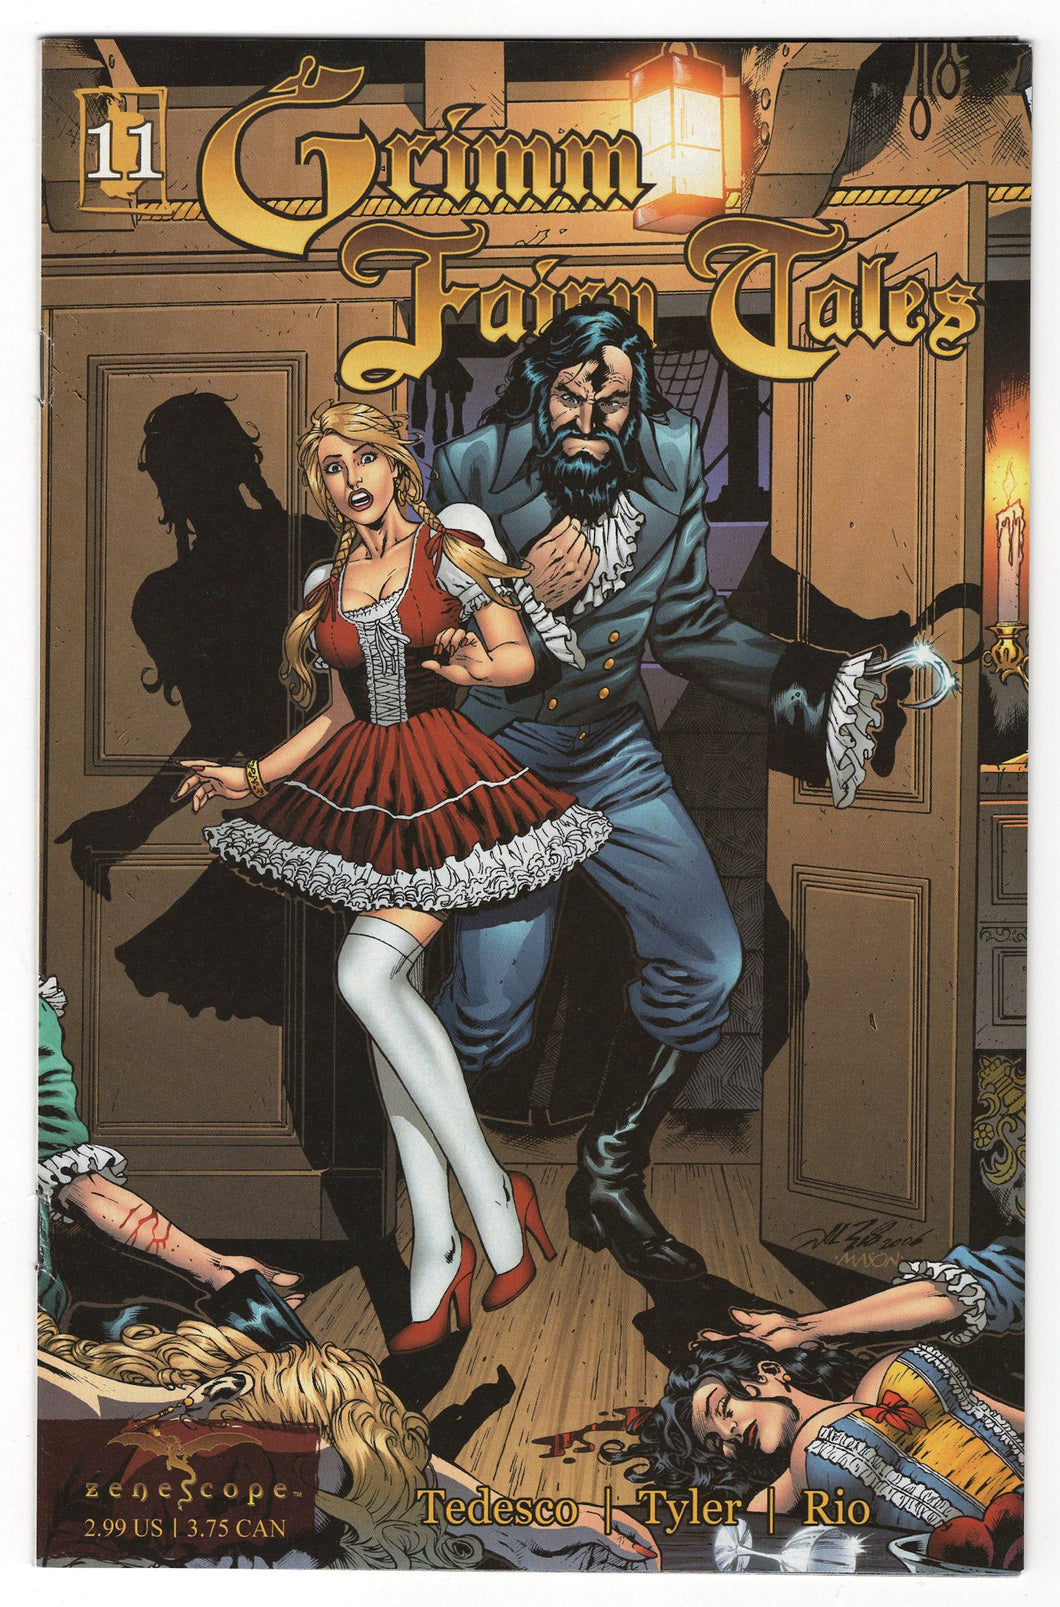 Grimm Fairy Tales #11 Cover Front